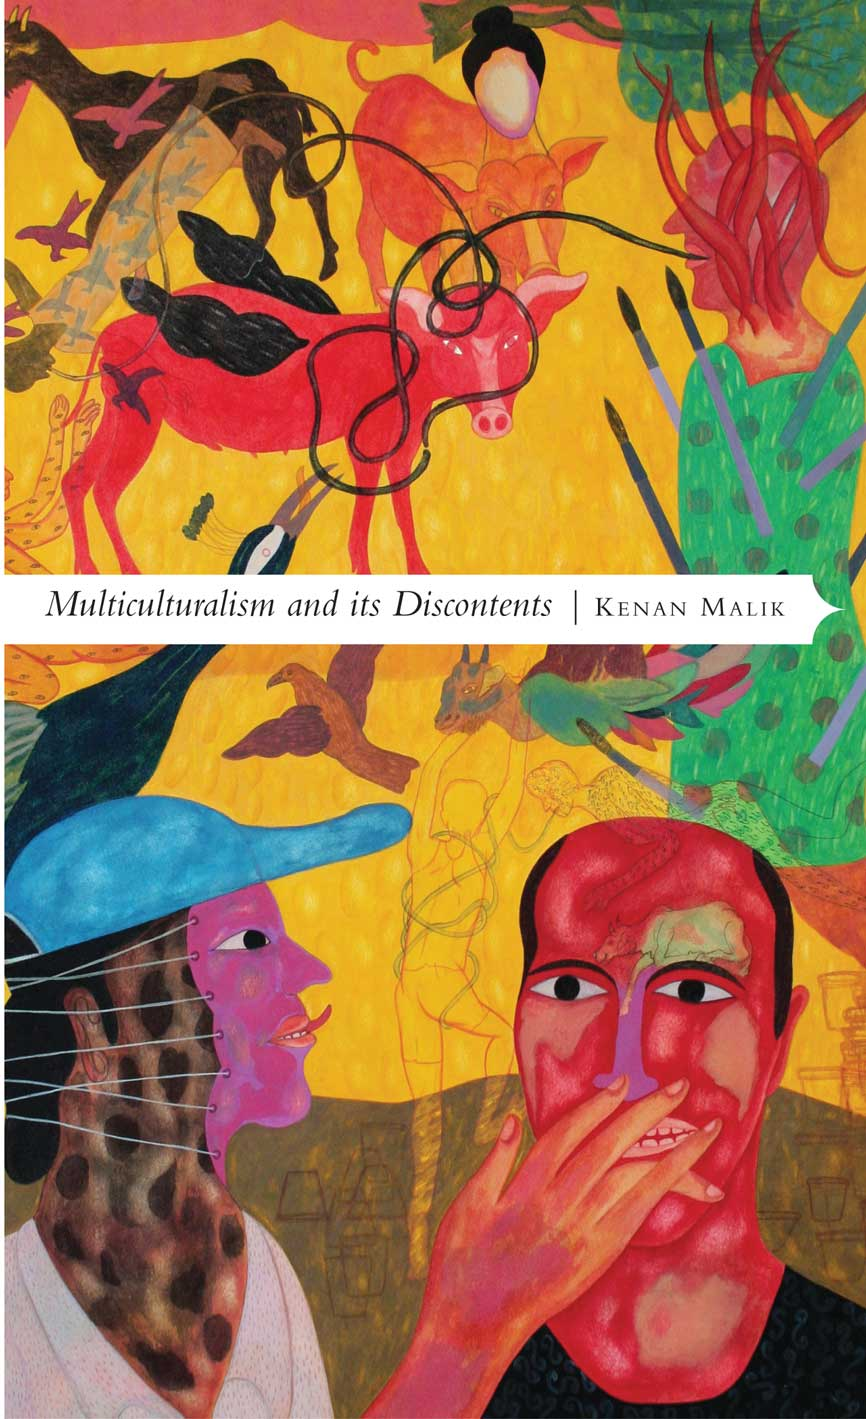 Multiculturalism and Its Discontents: Rethinking Diversity after 9/11 by Kenan Malik    Seagull Books